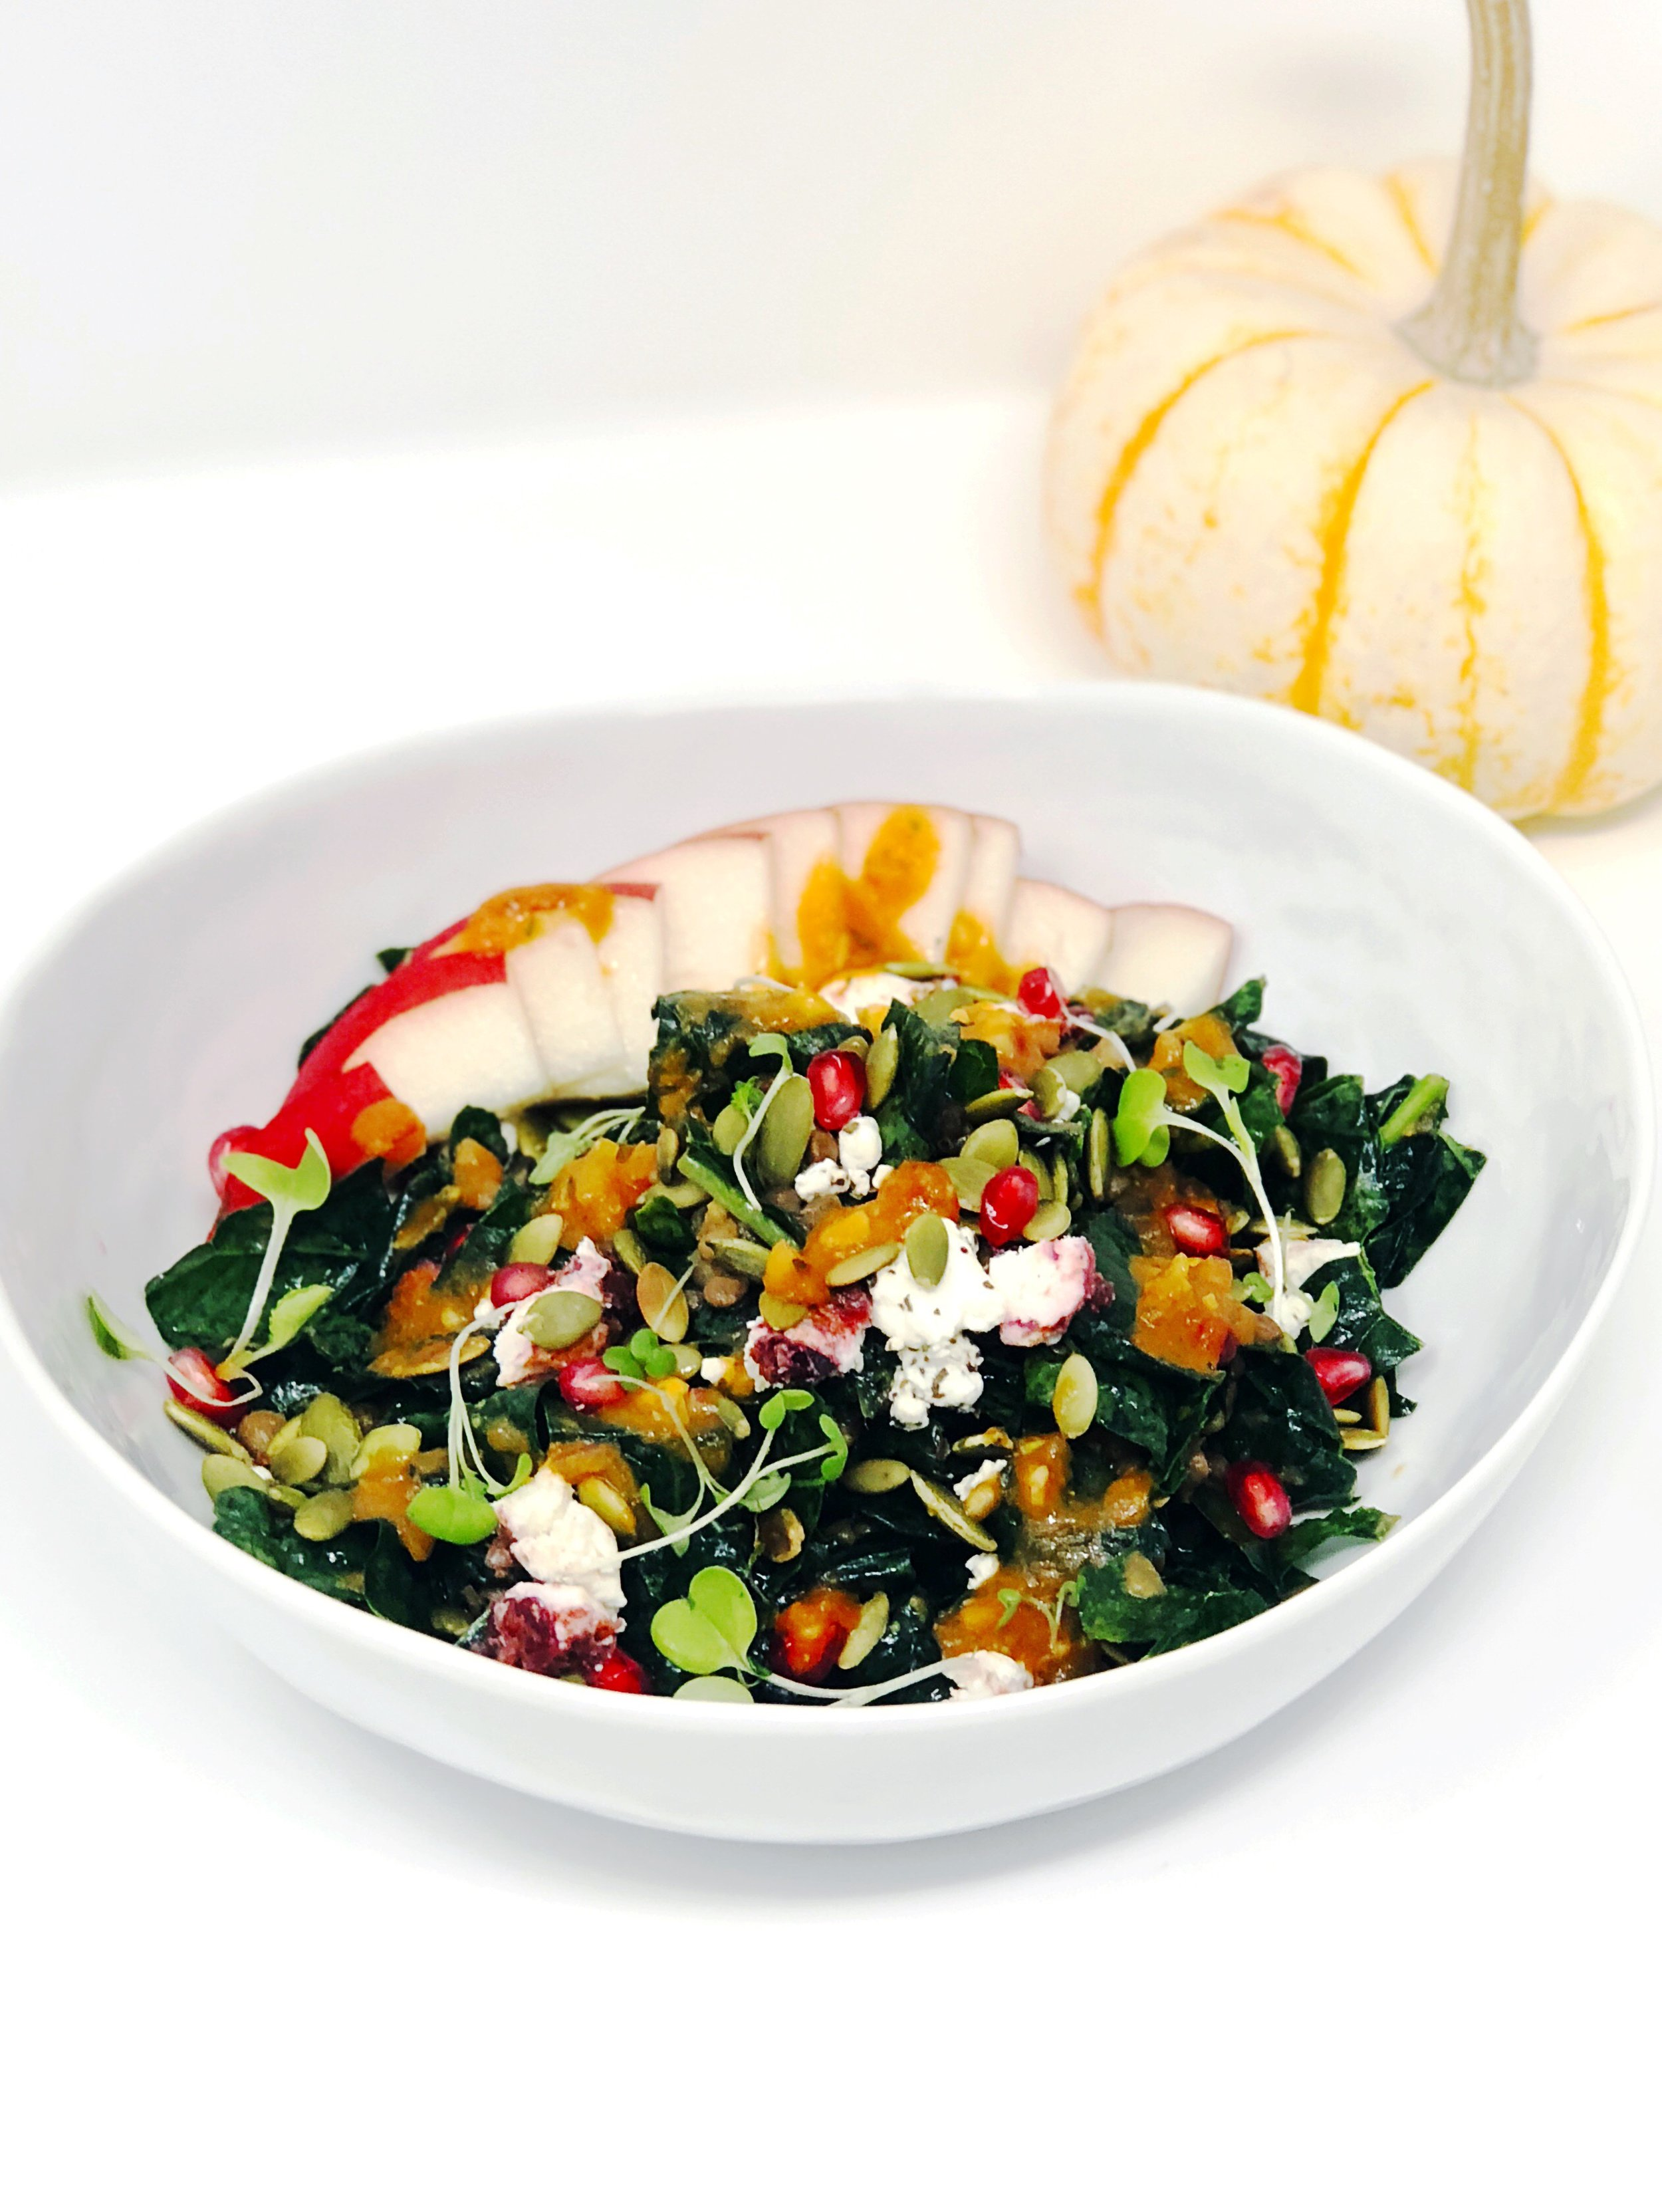 Fall-kale-salad-with-spiced-pumpkin-vinaigrette.jpg